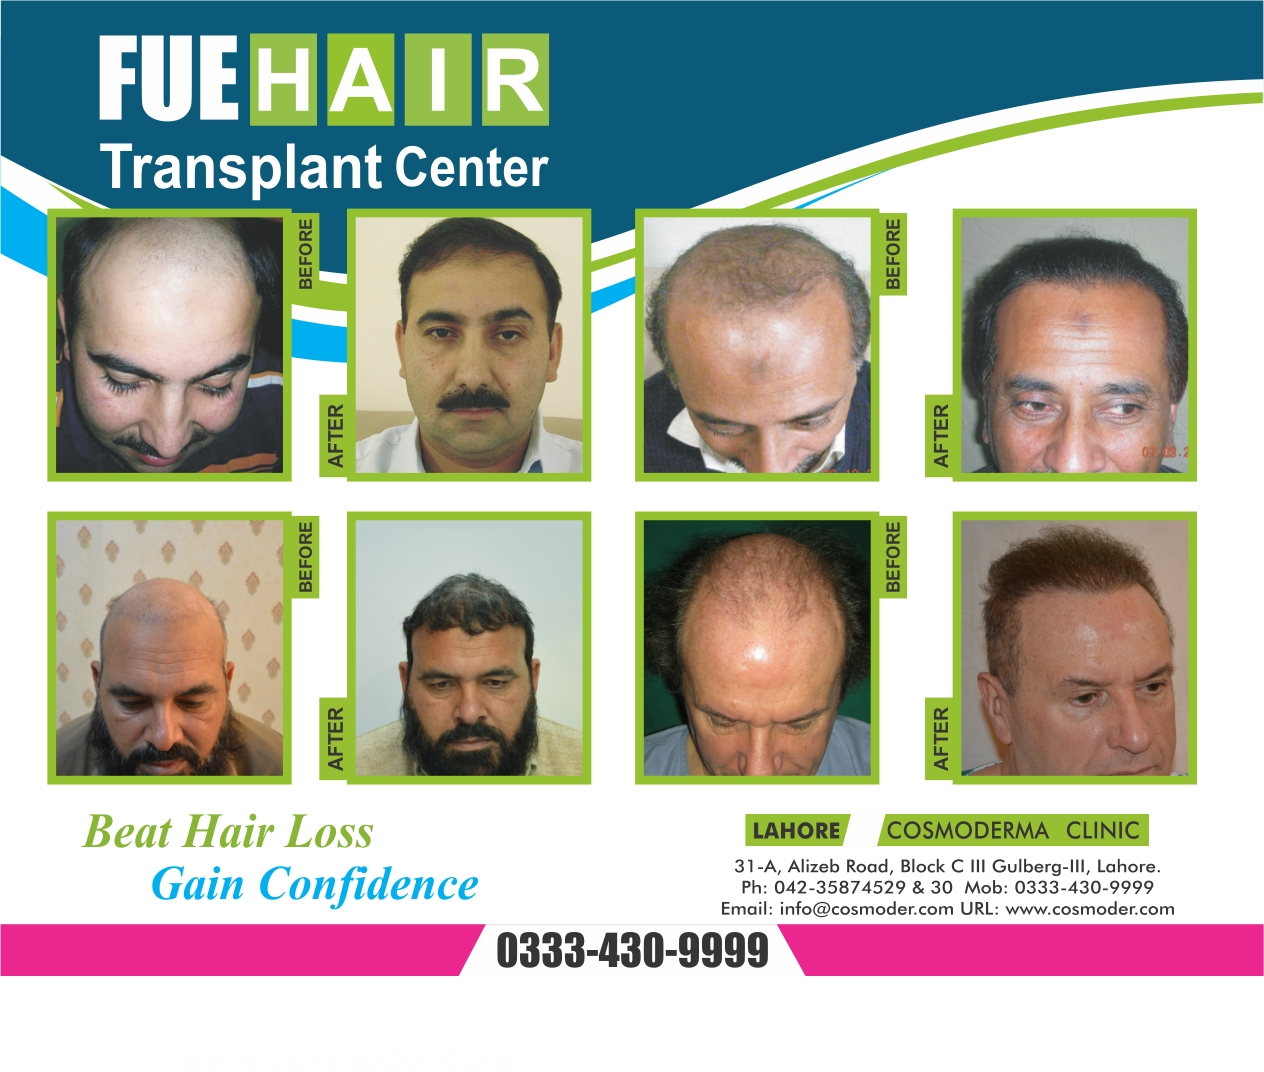 Frontal hair transplant cost and results in Pakistan